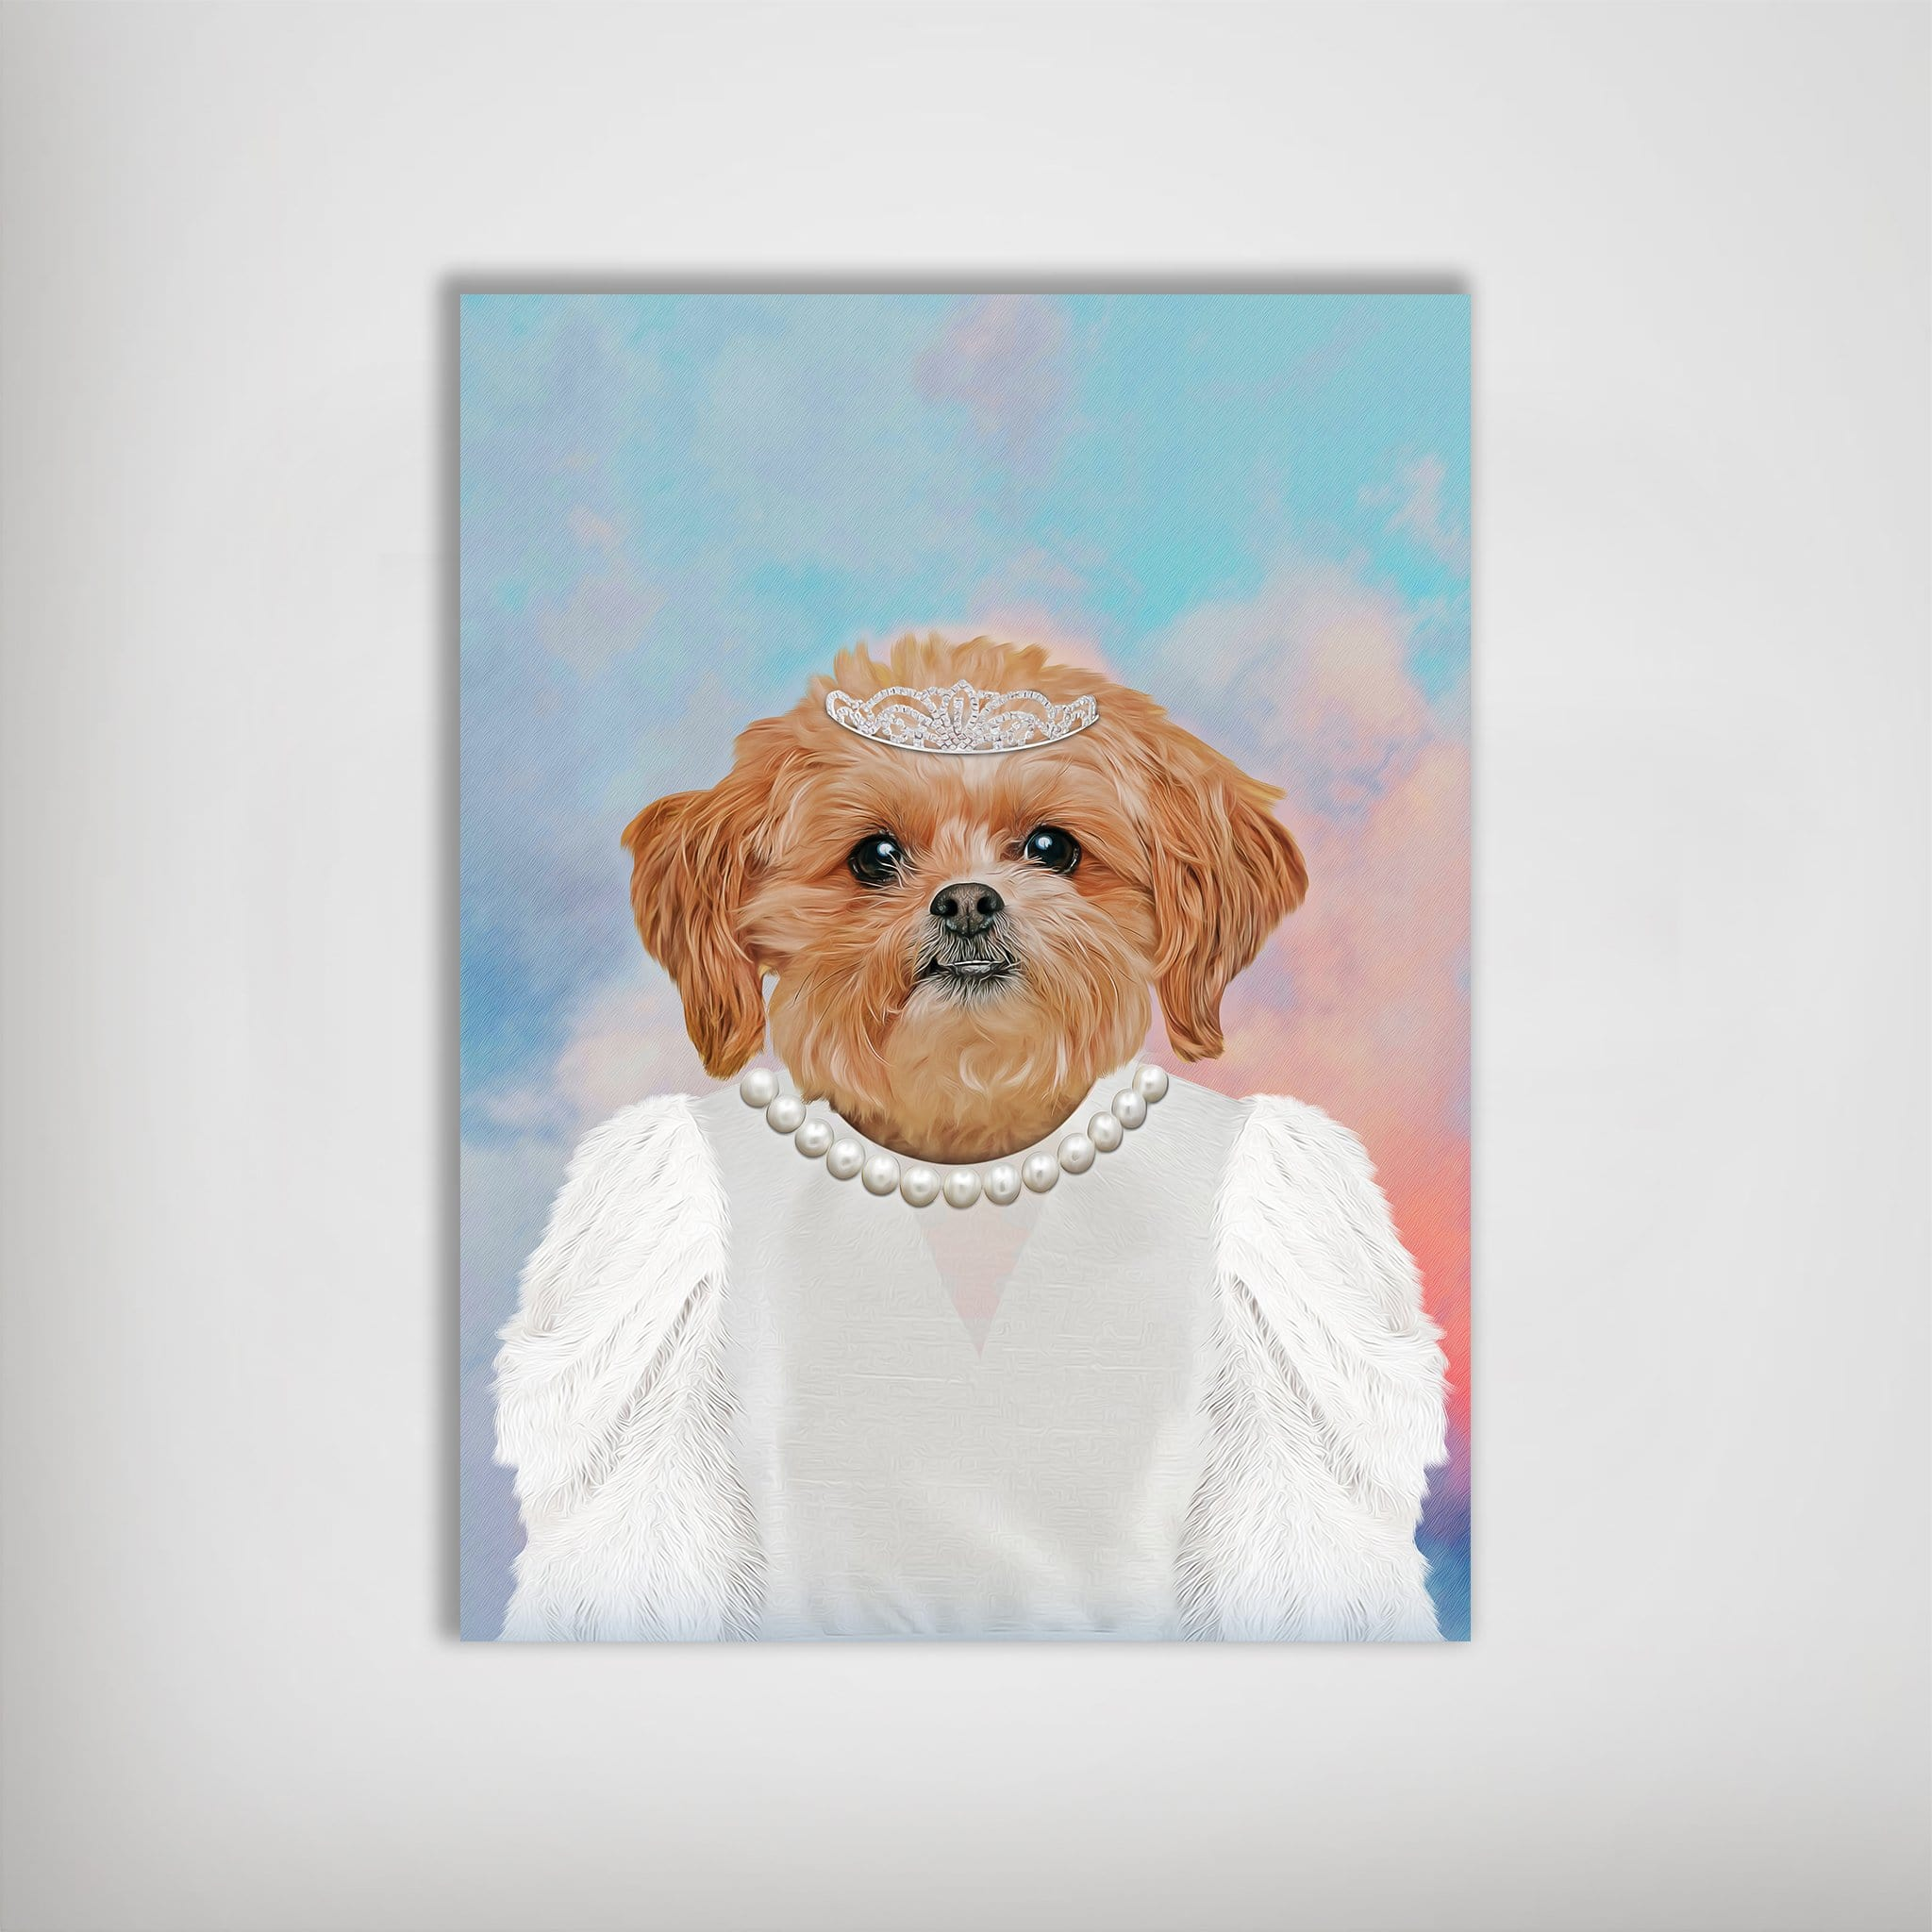 'The Bailarina' Personalized Pet Poster